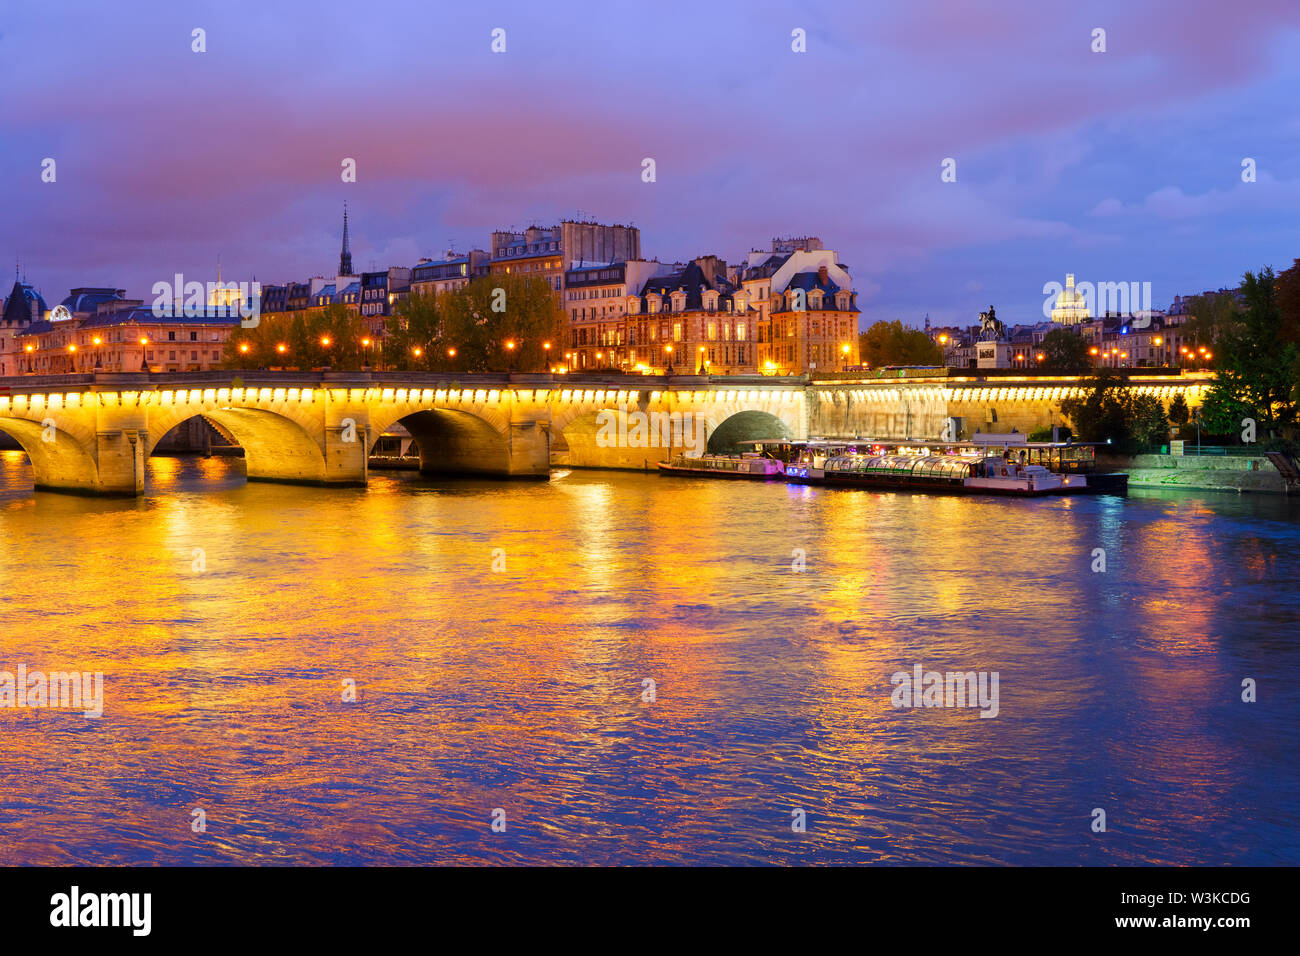 Pont Neuf and Cite island over Seine at night, Paris, France - Stock Image